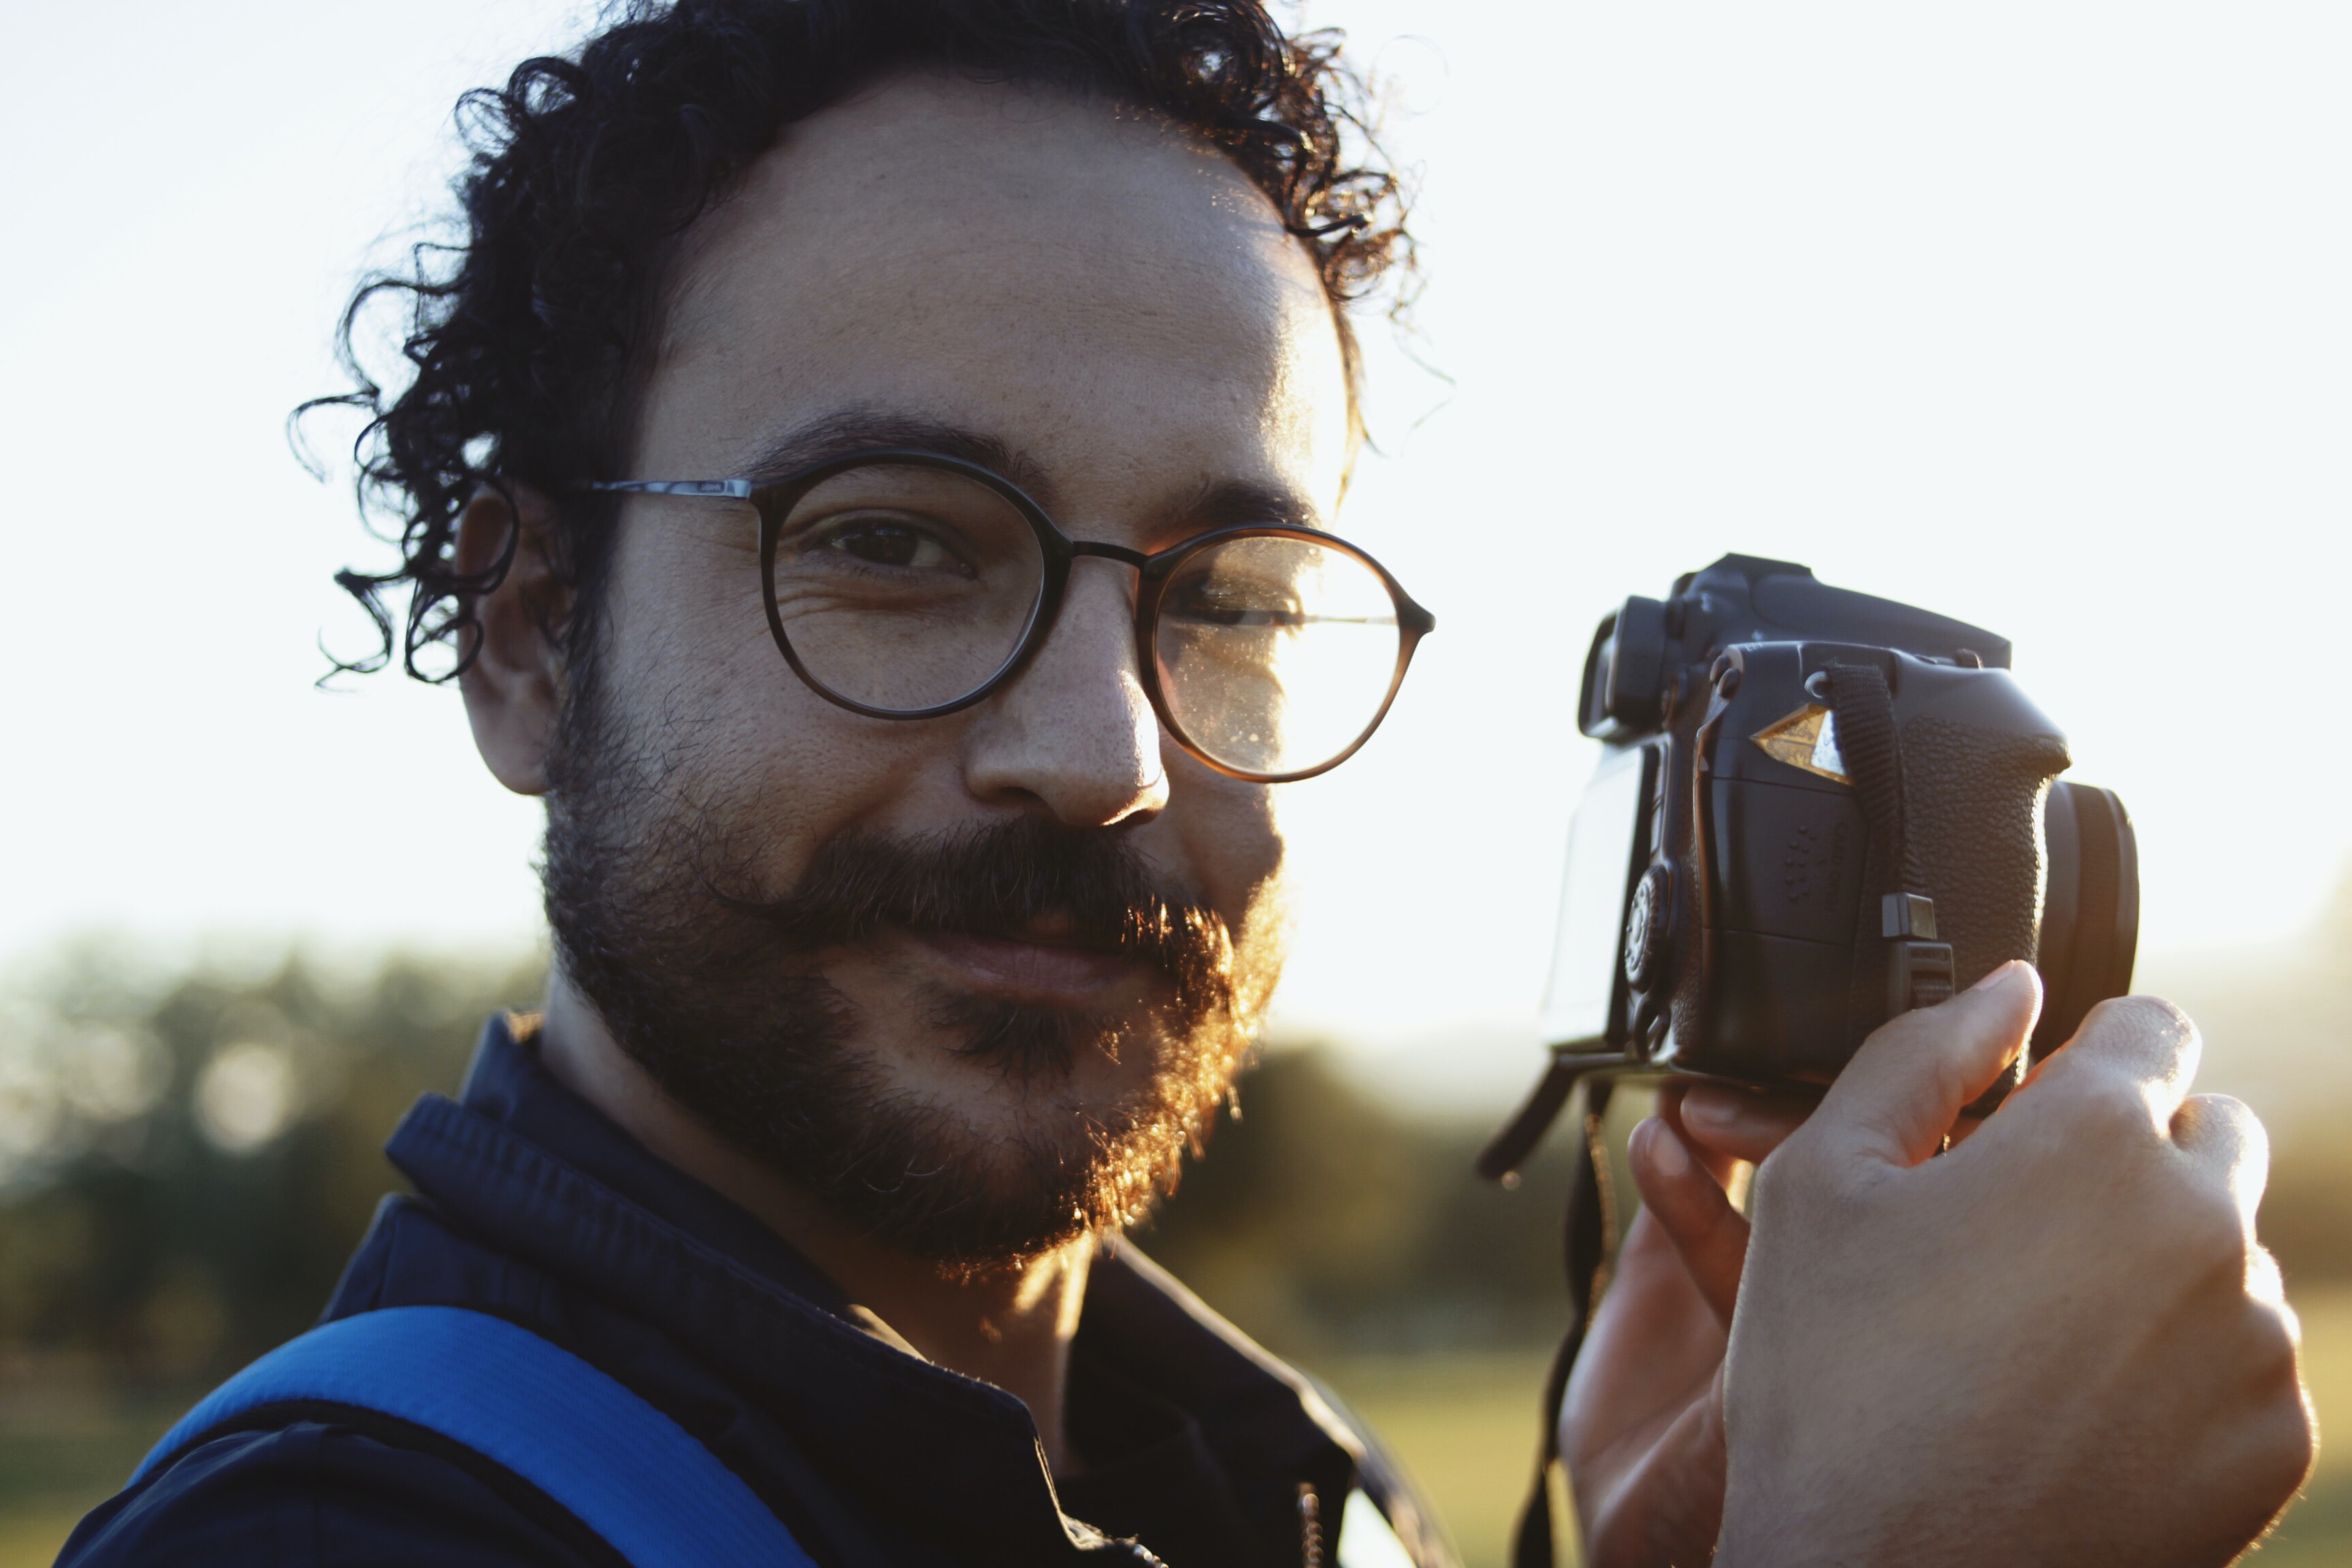 man wearing eyeglasses holding DSLR camera